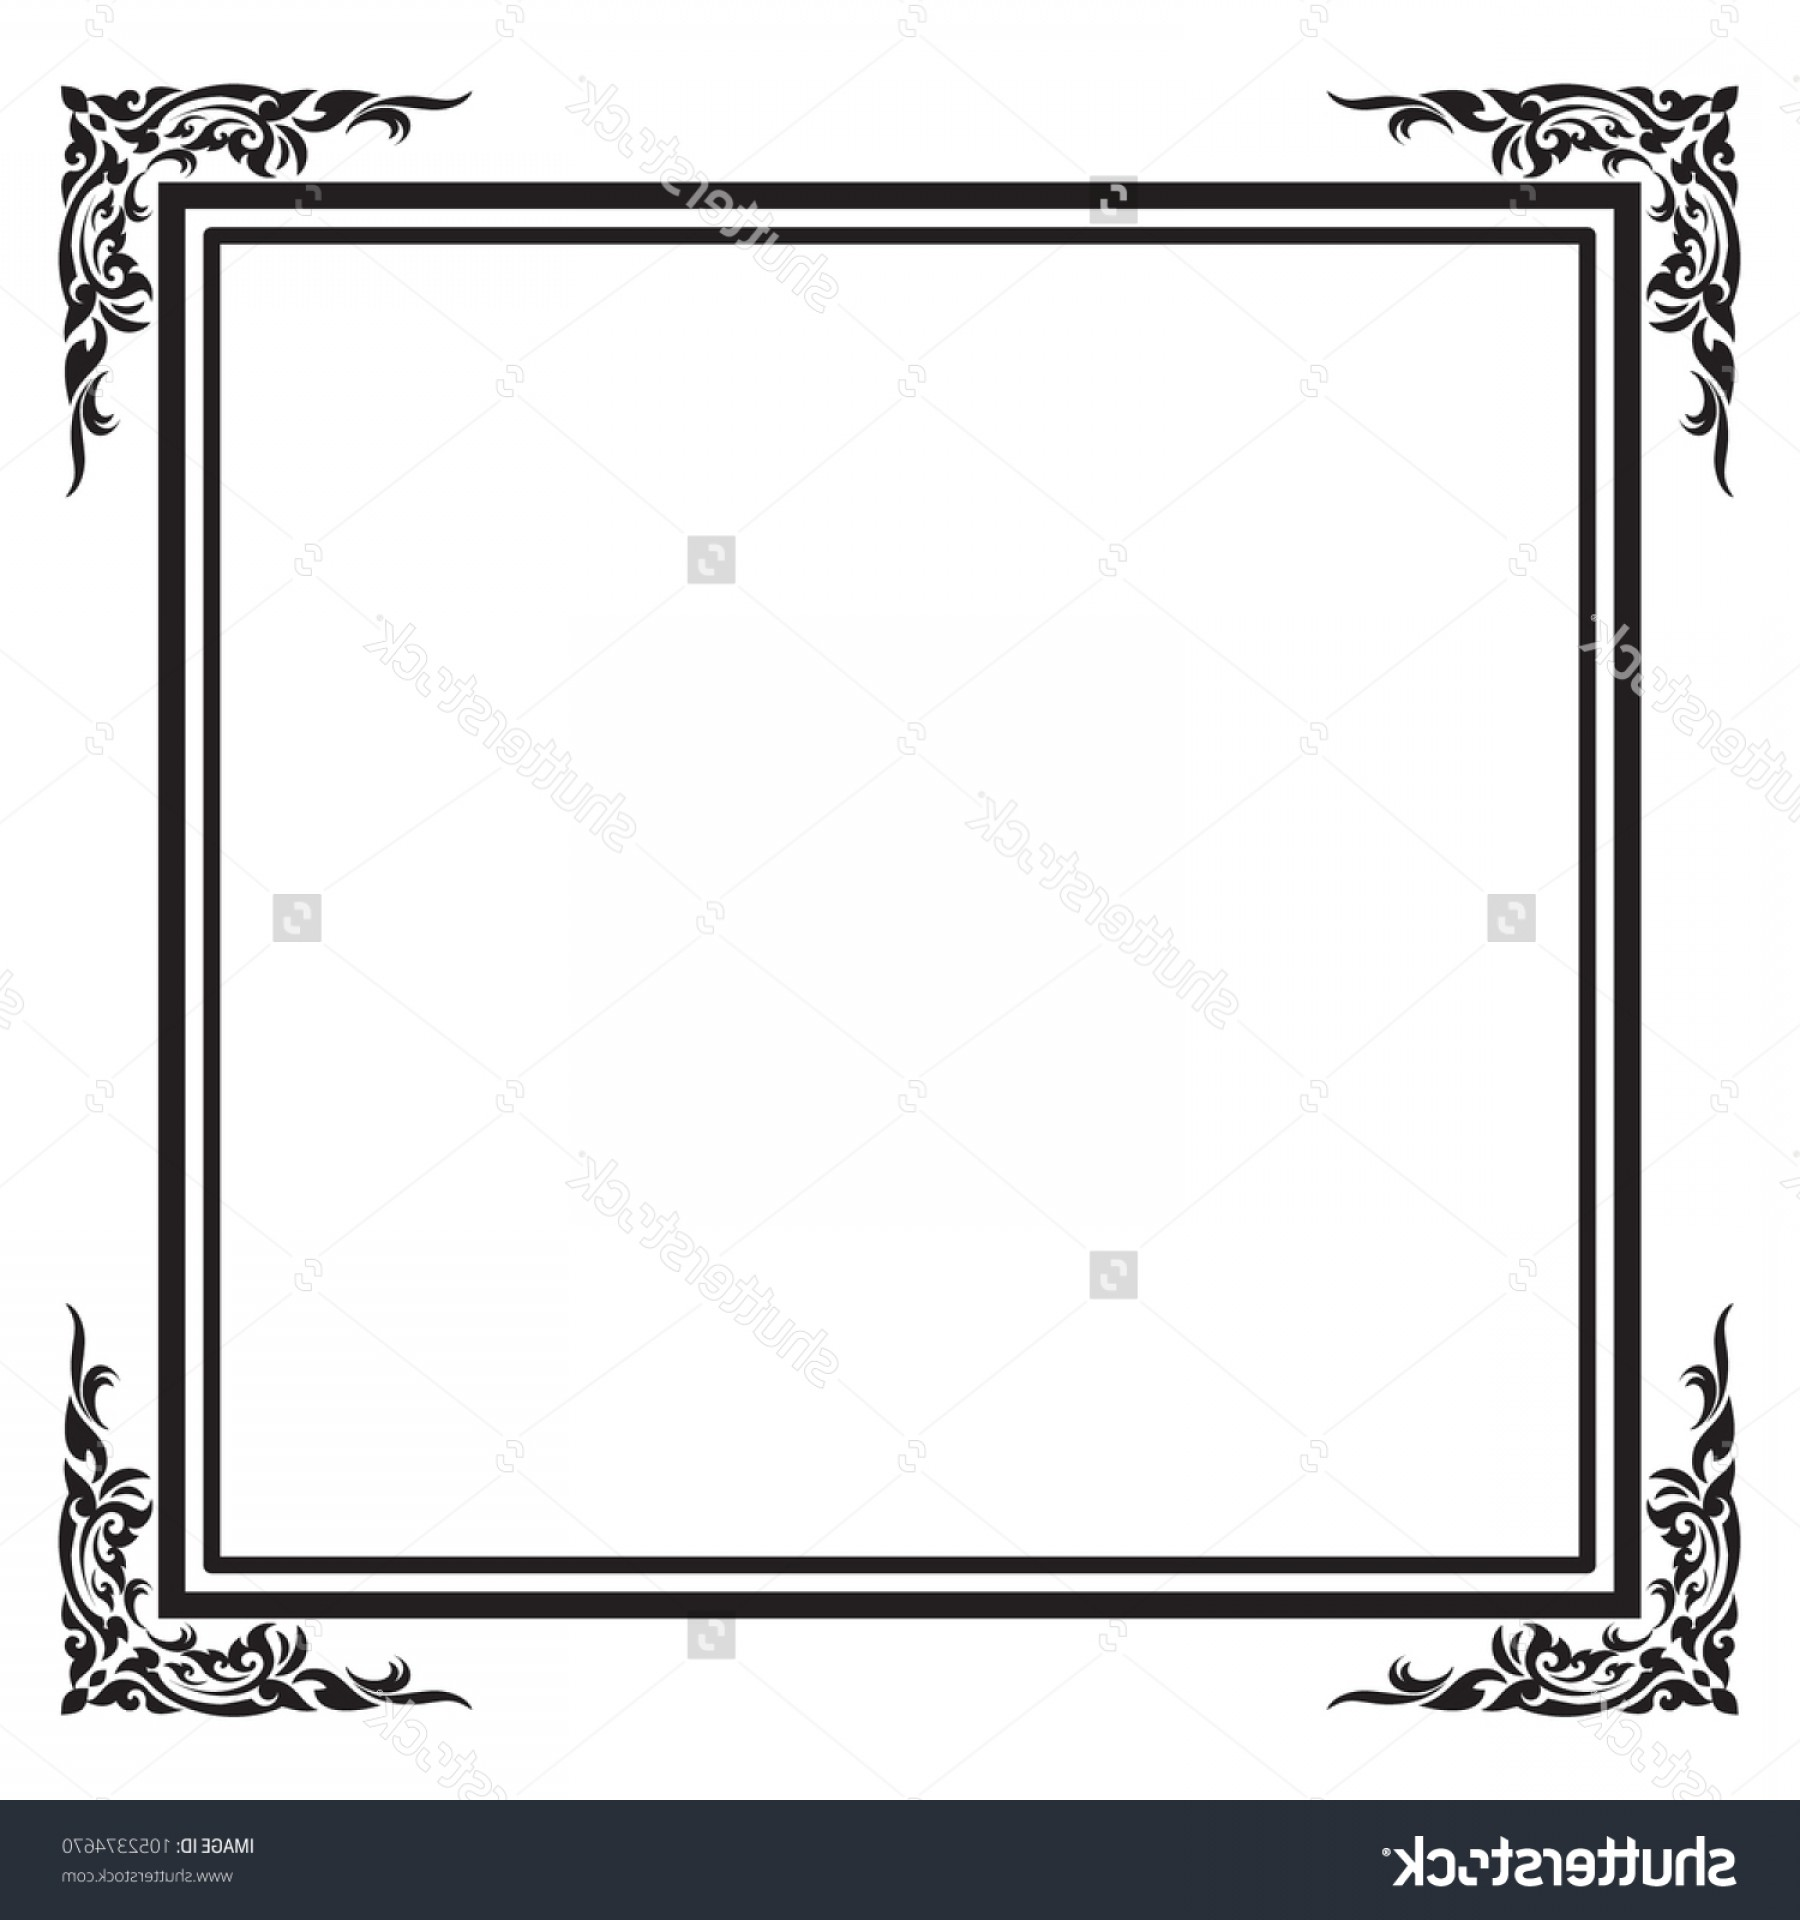 Square Black Vector Border Frame: Frame Border Square Black White Vector